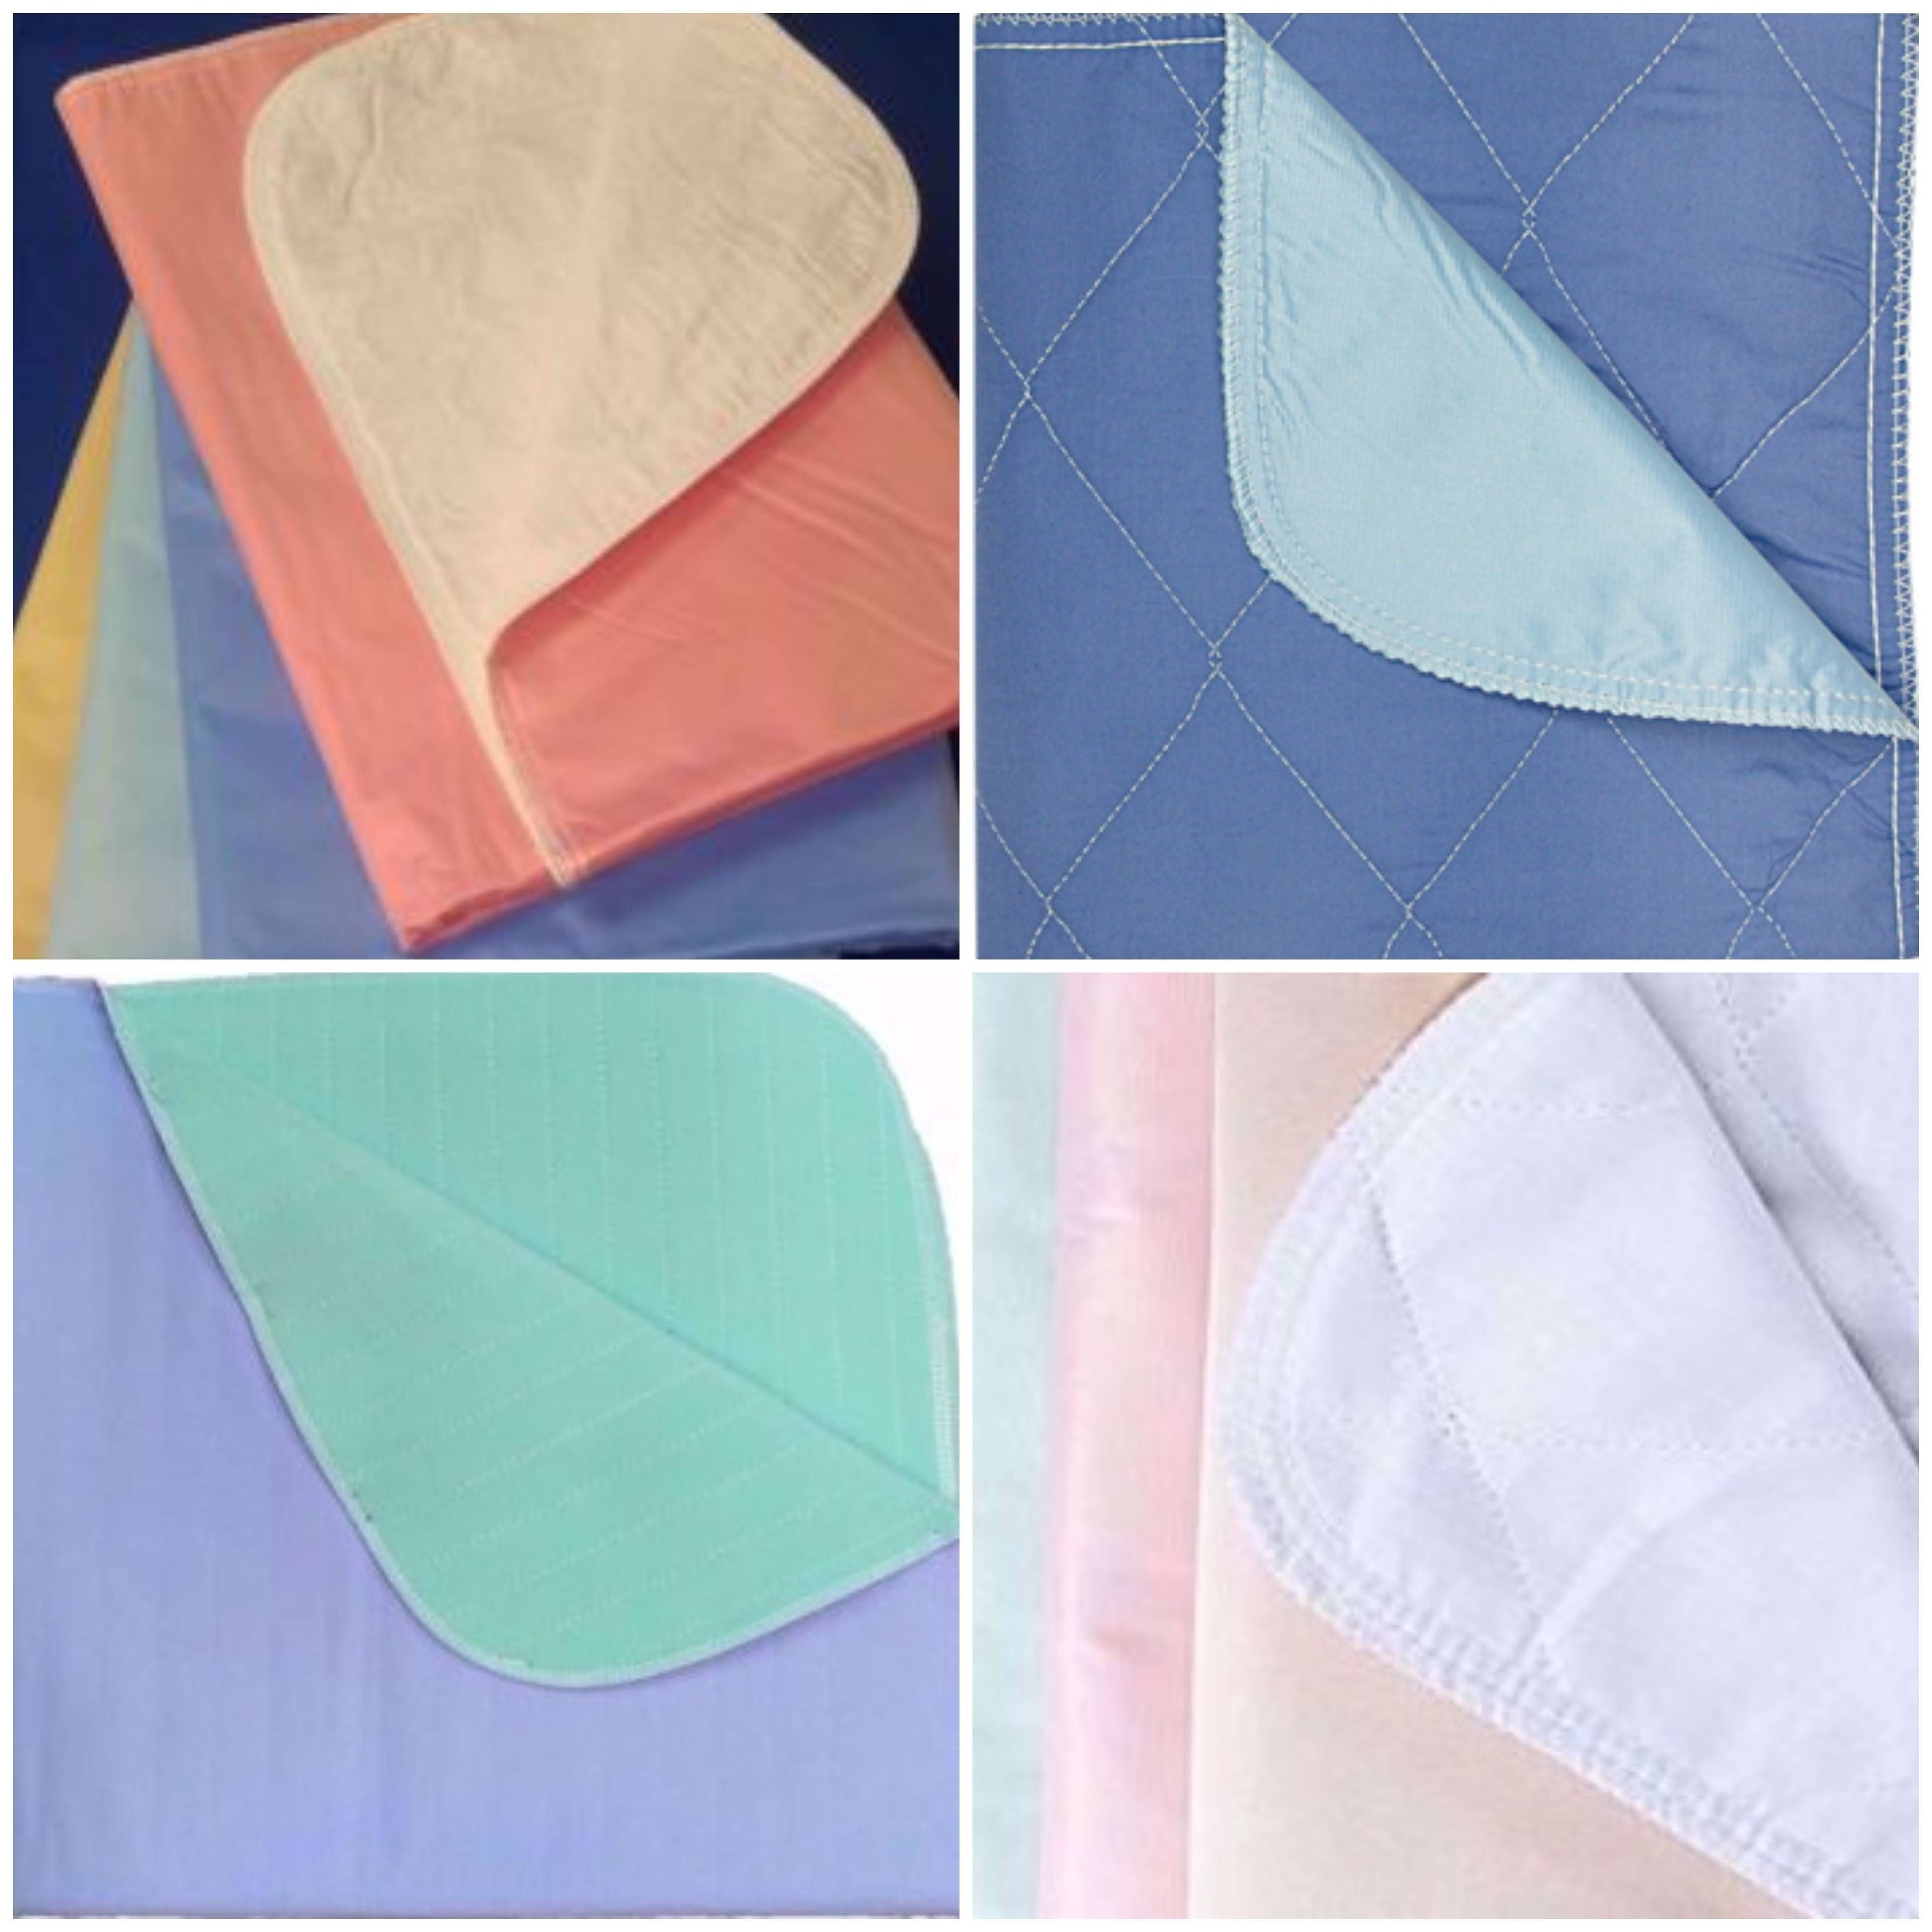 Washable, Wholesale incontinence Underpads are reusable in